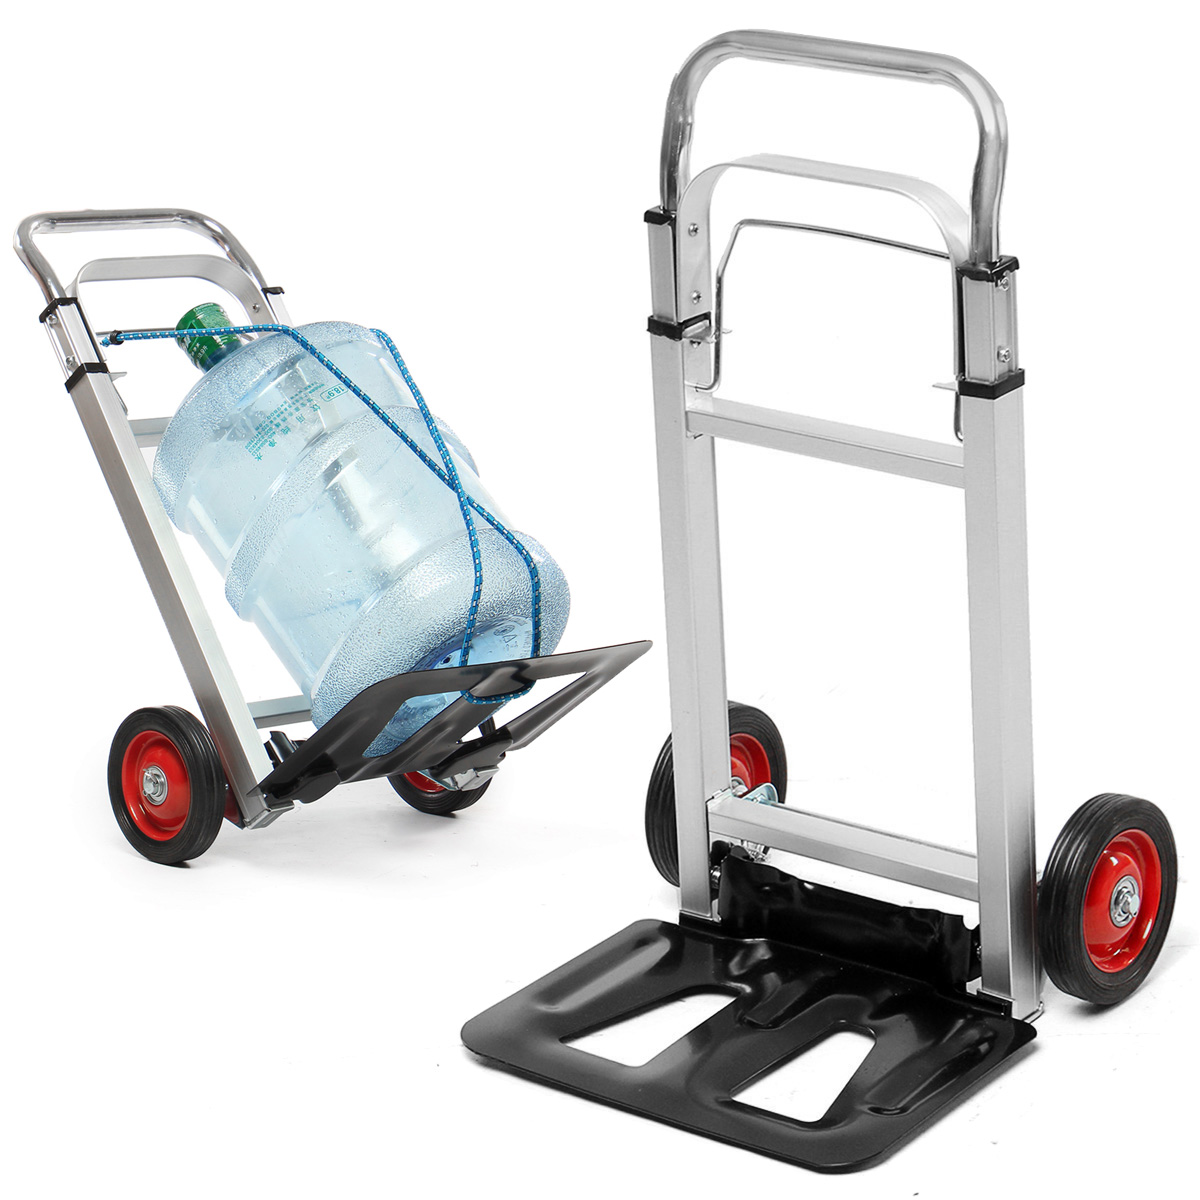 7e34478ec3aa US $107.85 25% OFF|Portable Cart Foldable Trolly Aluminium Hand Truck  Trolley Cargo Wheels 90kg Luggage Carts Shopping Wheels-in Tool Parts from  Tools ...